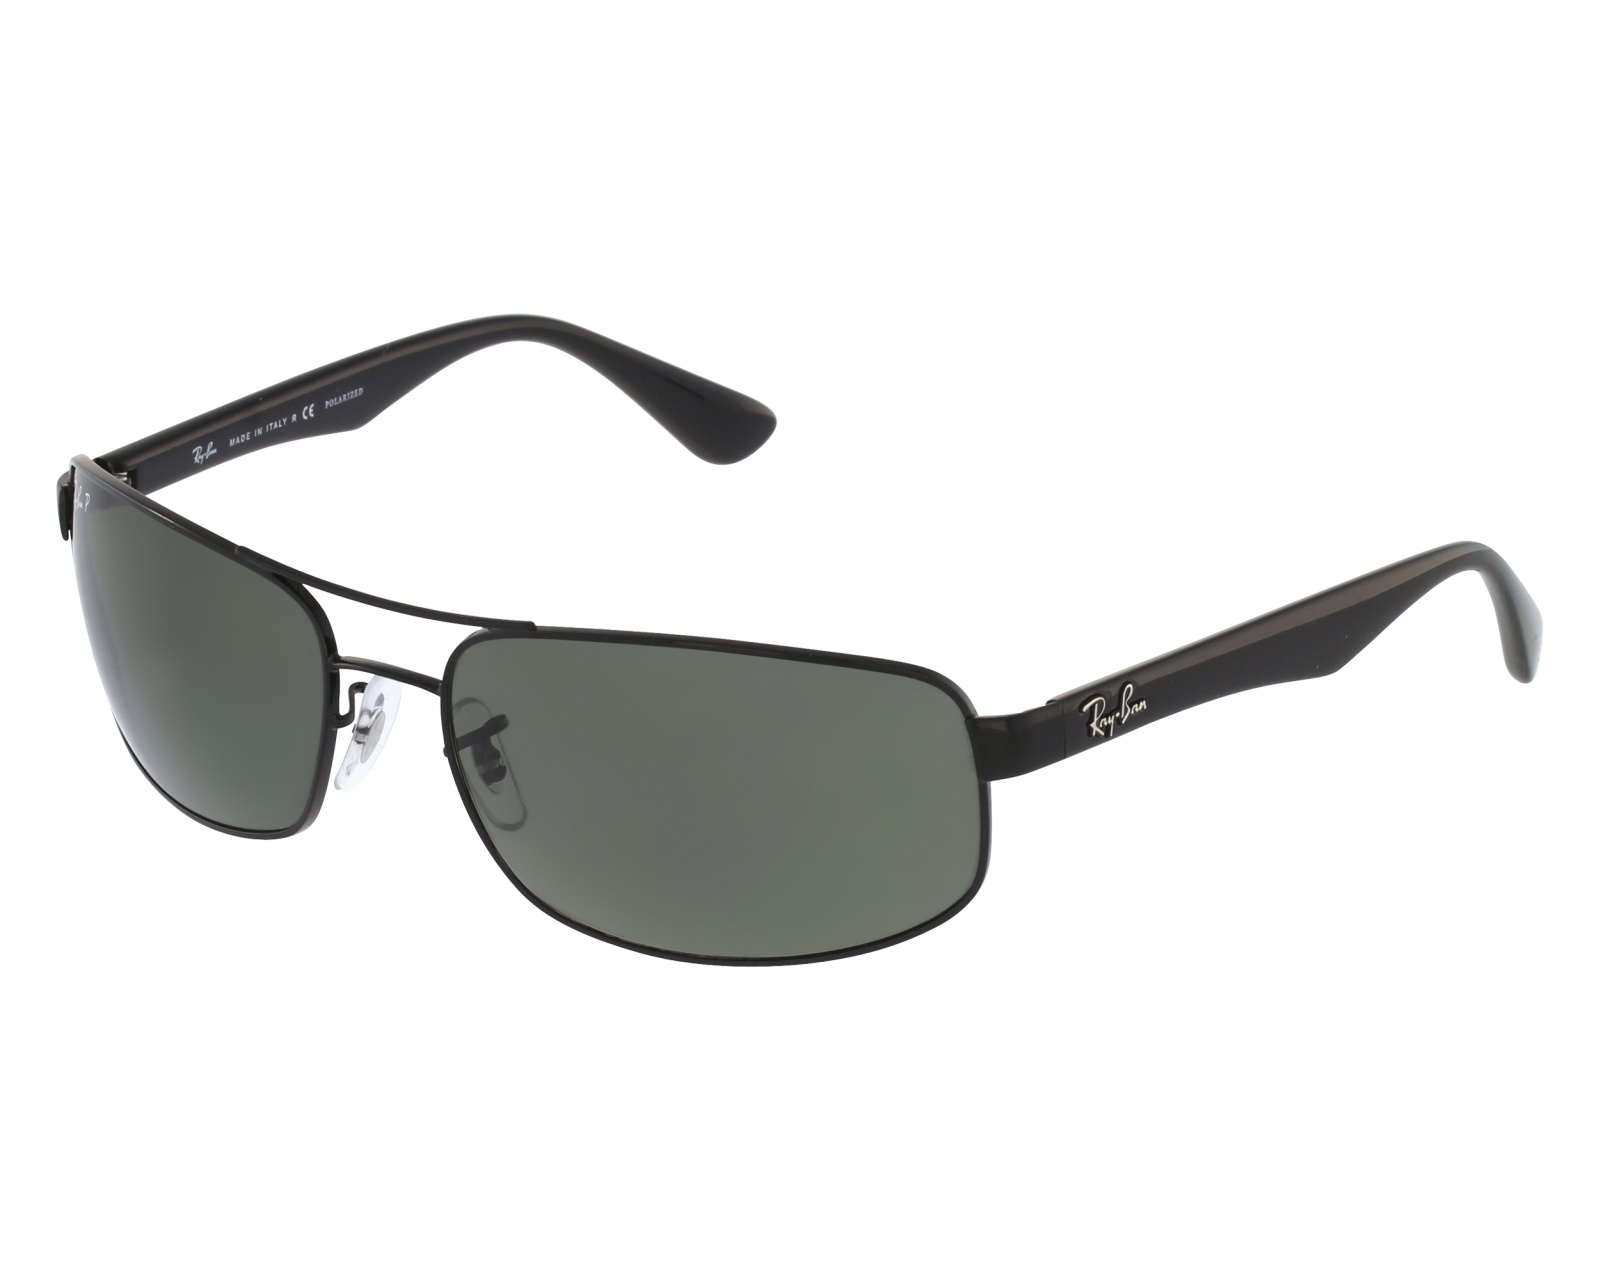 Sunglasses Ray-Ban RB-3445 002 58 61-17 Black front view 07441896c0